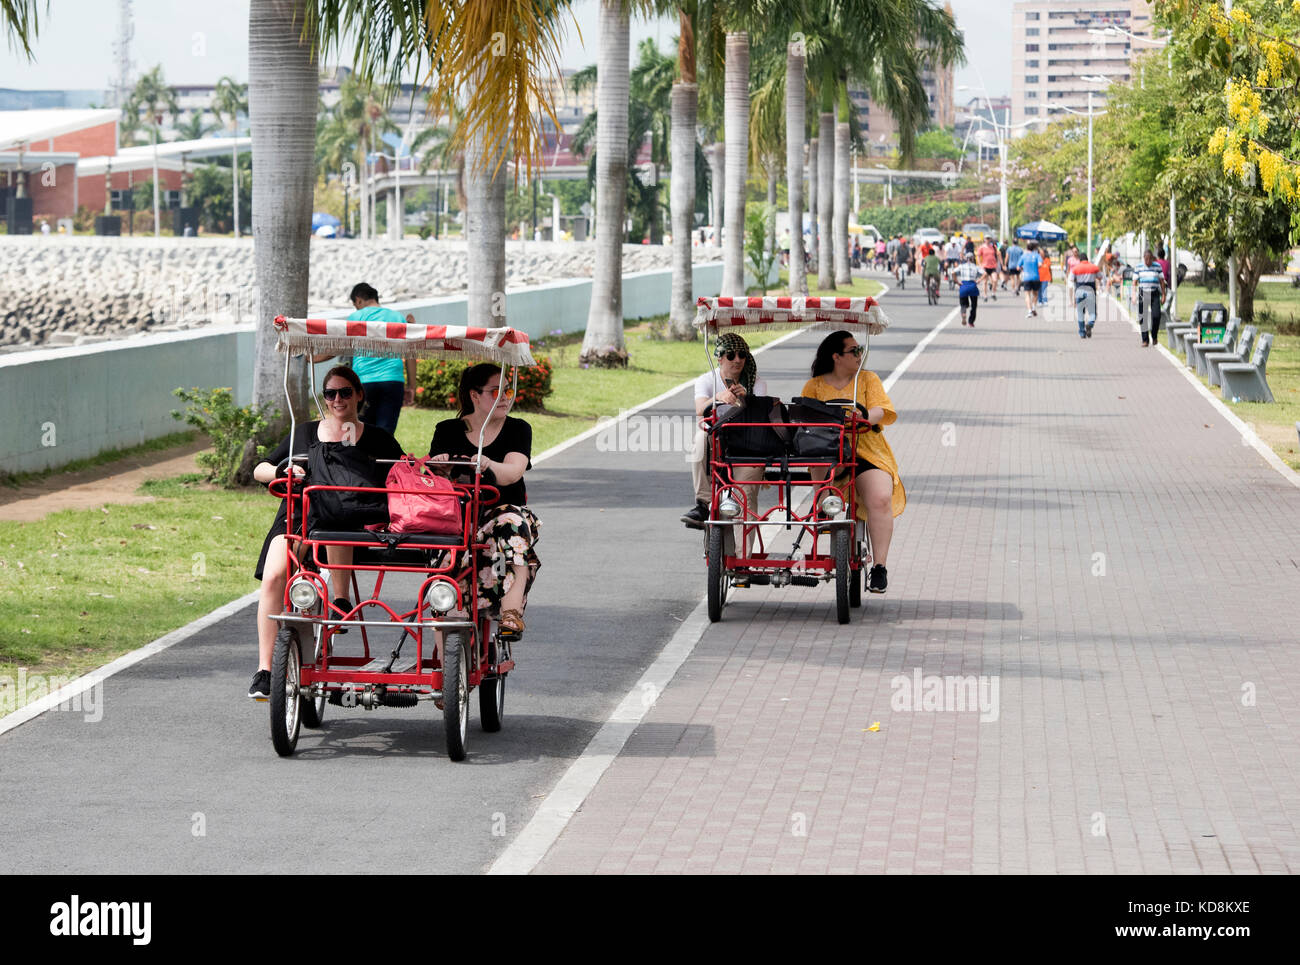 Four wheel fun bicycle carts in the traffic free area on Sunday in Panama City - Stock Image